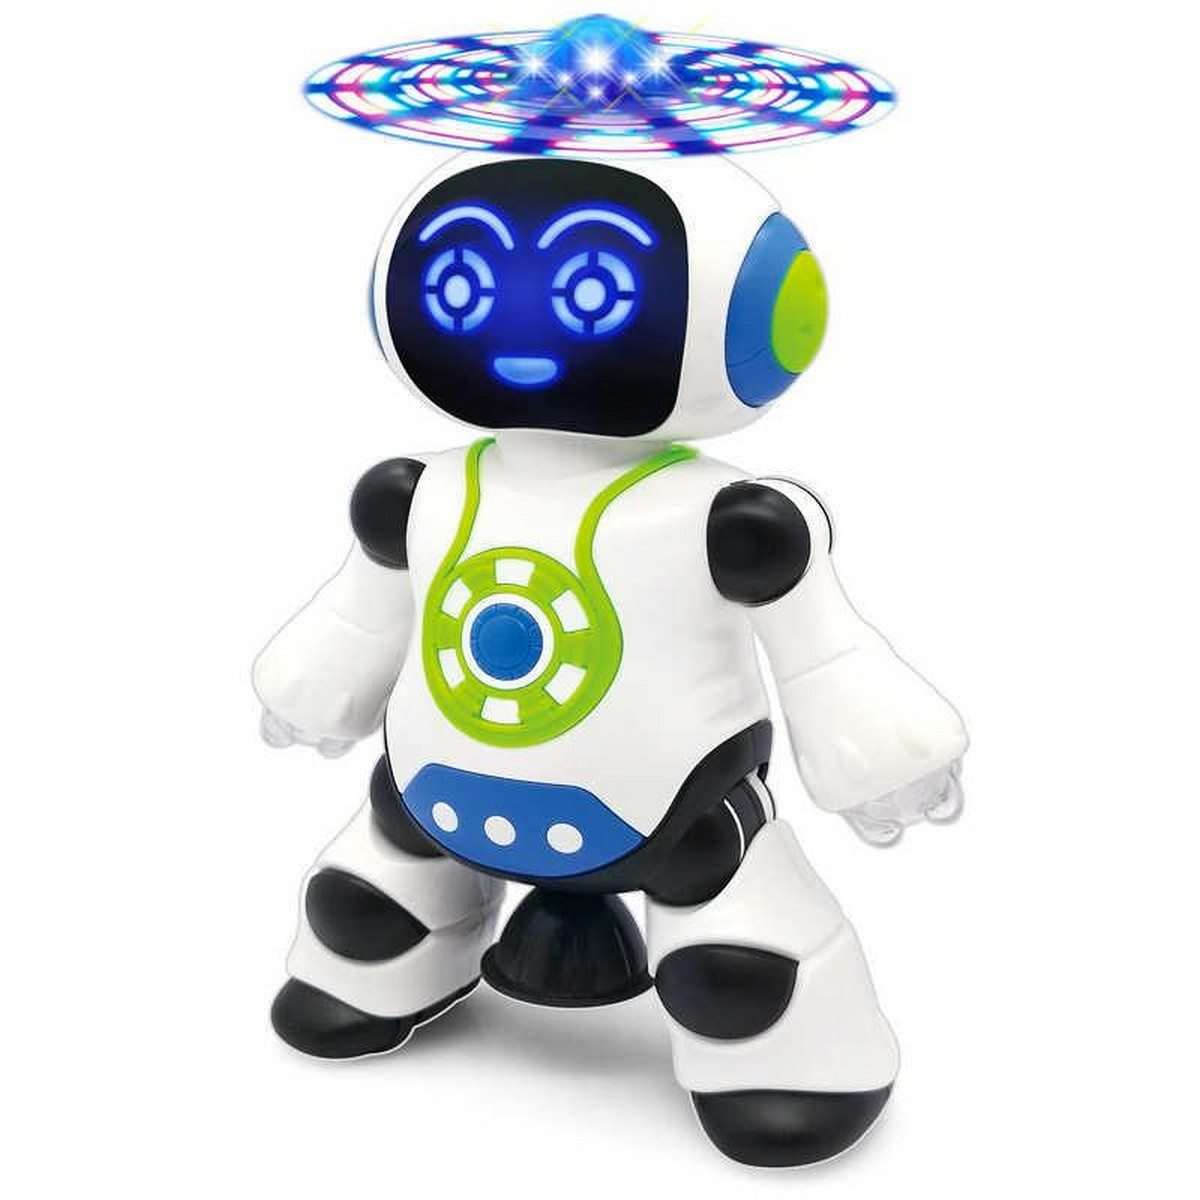 Dancing Robot With 360 Degree Moving Function